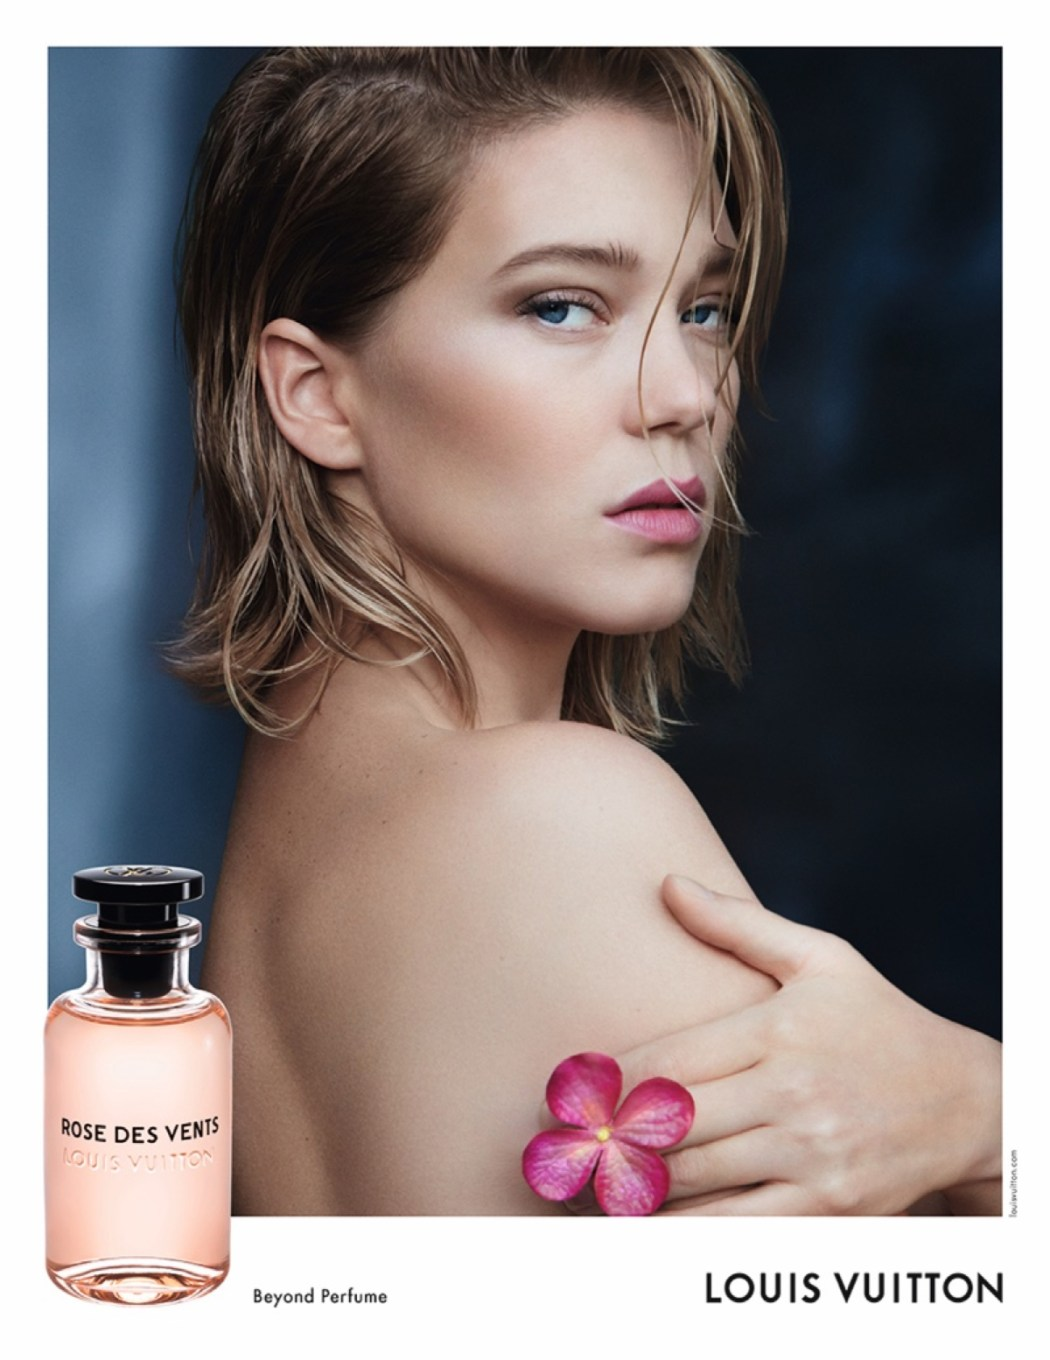 Louis Vuitton Perfume Ad Campaign Featuring Lea Seydoux by Patrick Demarchelier 4